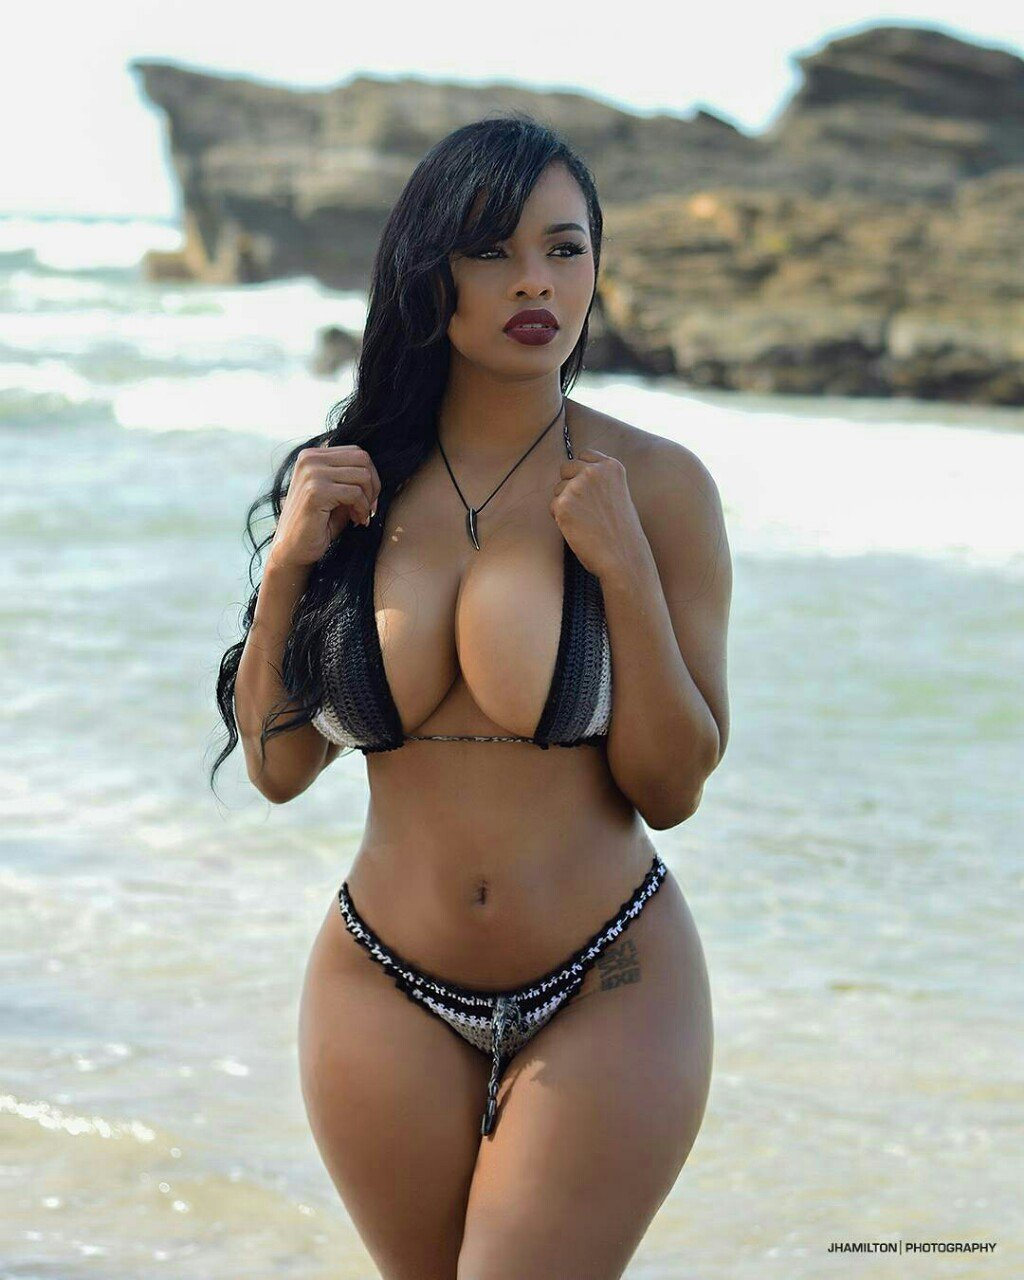 Hot girls with nice curves, old asian nudes